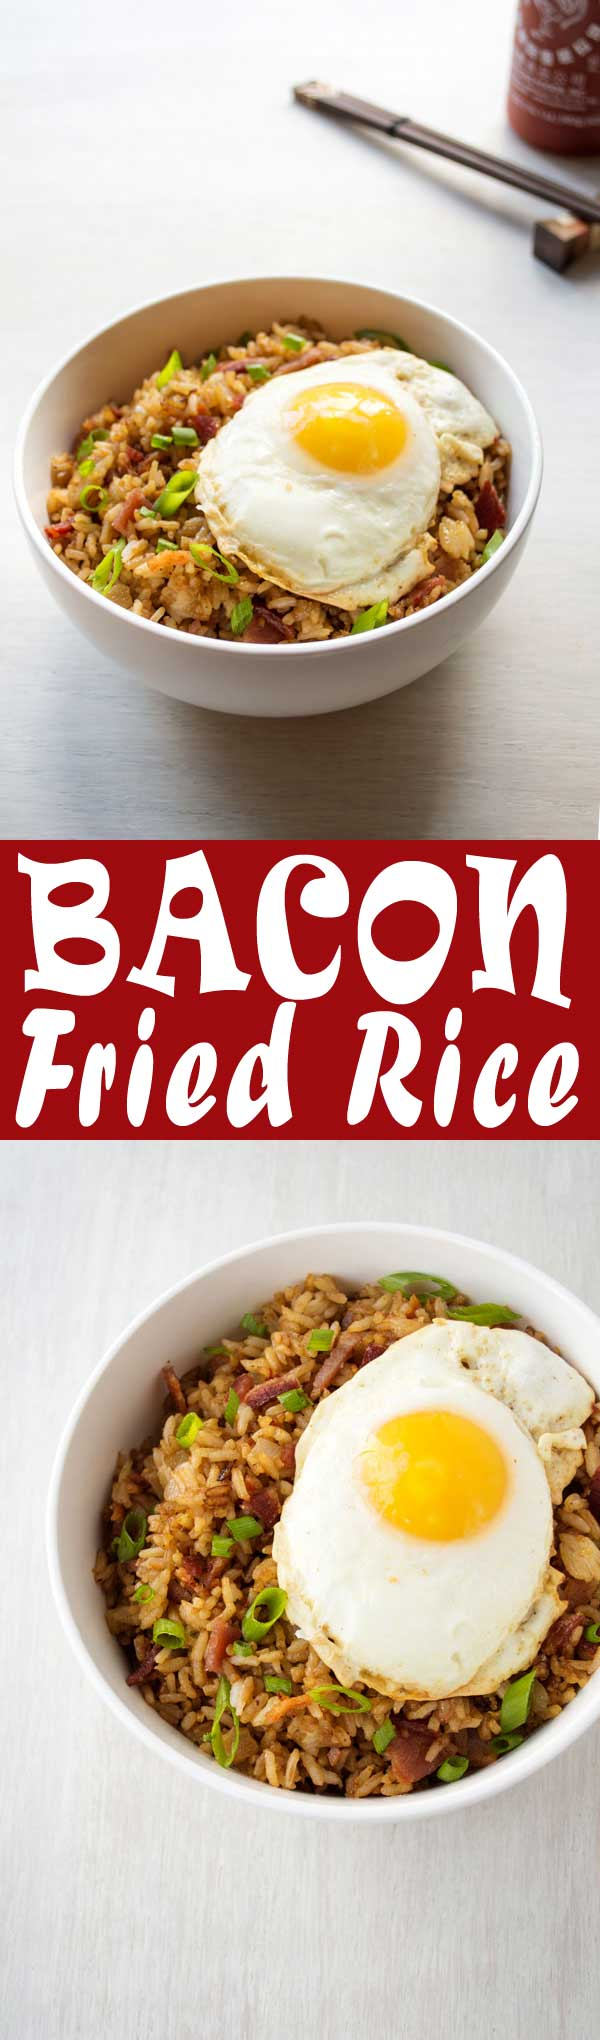 Bacon Fried Rice with a fried egg on top! Quick and easy breakfast, lunch or dinner! #recipe #recipeideas #easyrecipe #food #foodgawker #foodblog #recipeoftheday #friedrice #rice #bacon #baconday #eggs #breakfast #lunch #dinner